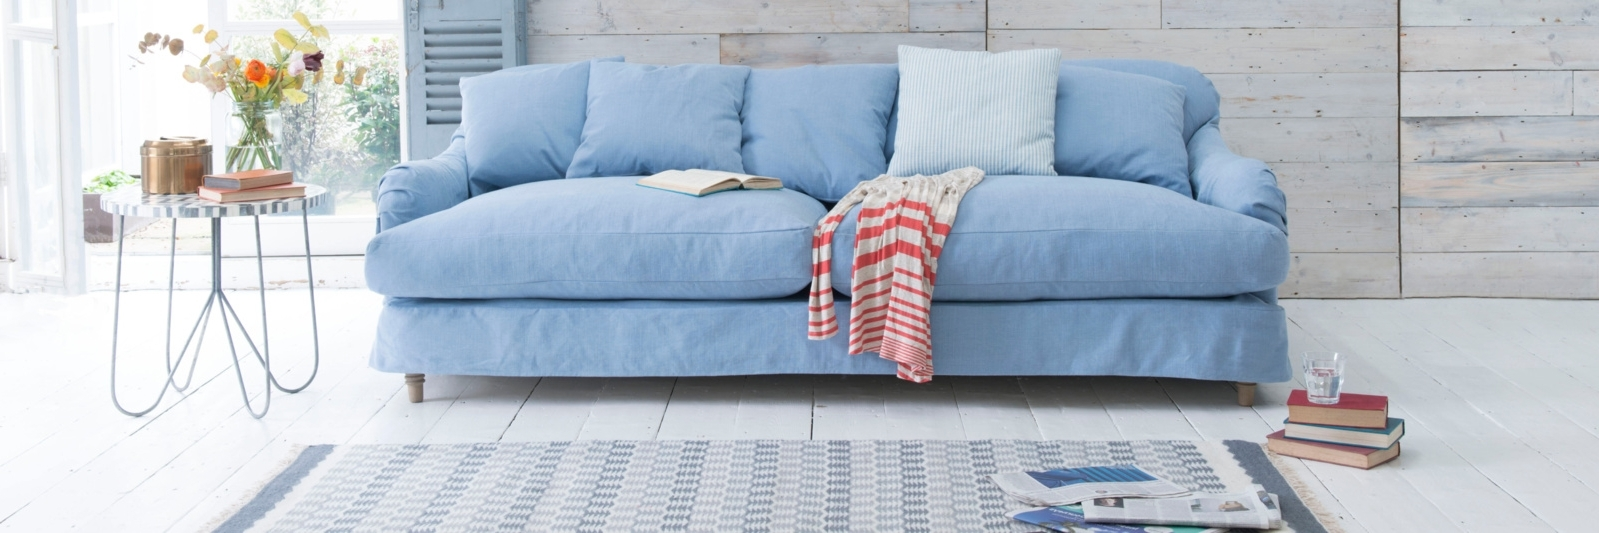 Sofas With Washable Covers Within Trendy Washable Slipcovered Sofas Machine Washable Sectional White (View 1 of 15)